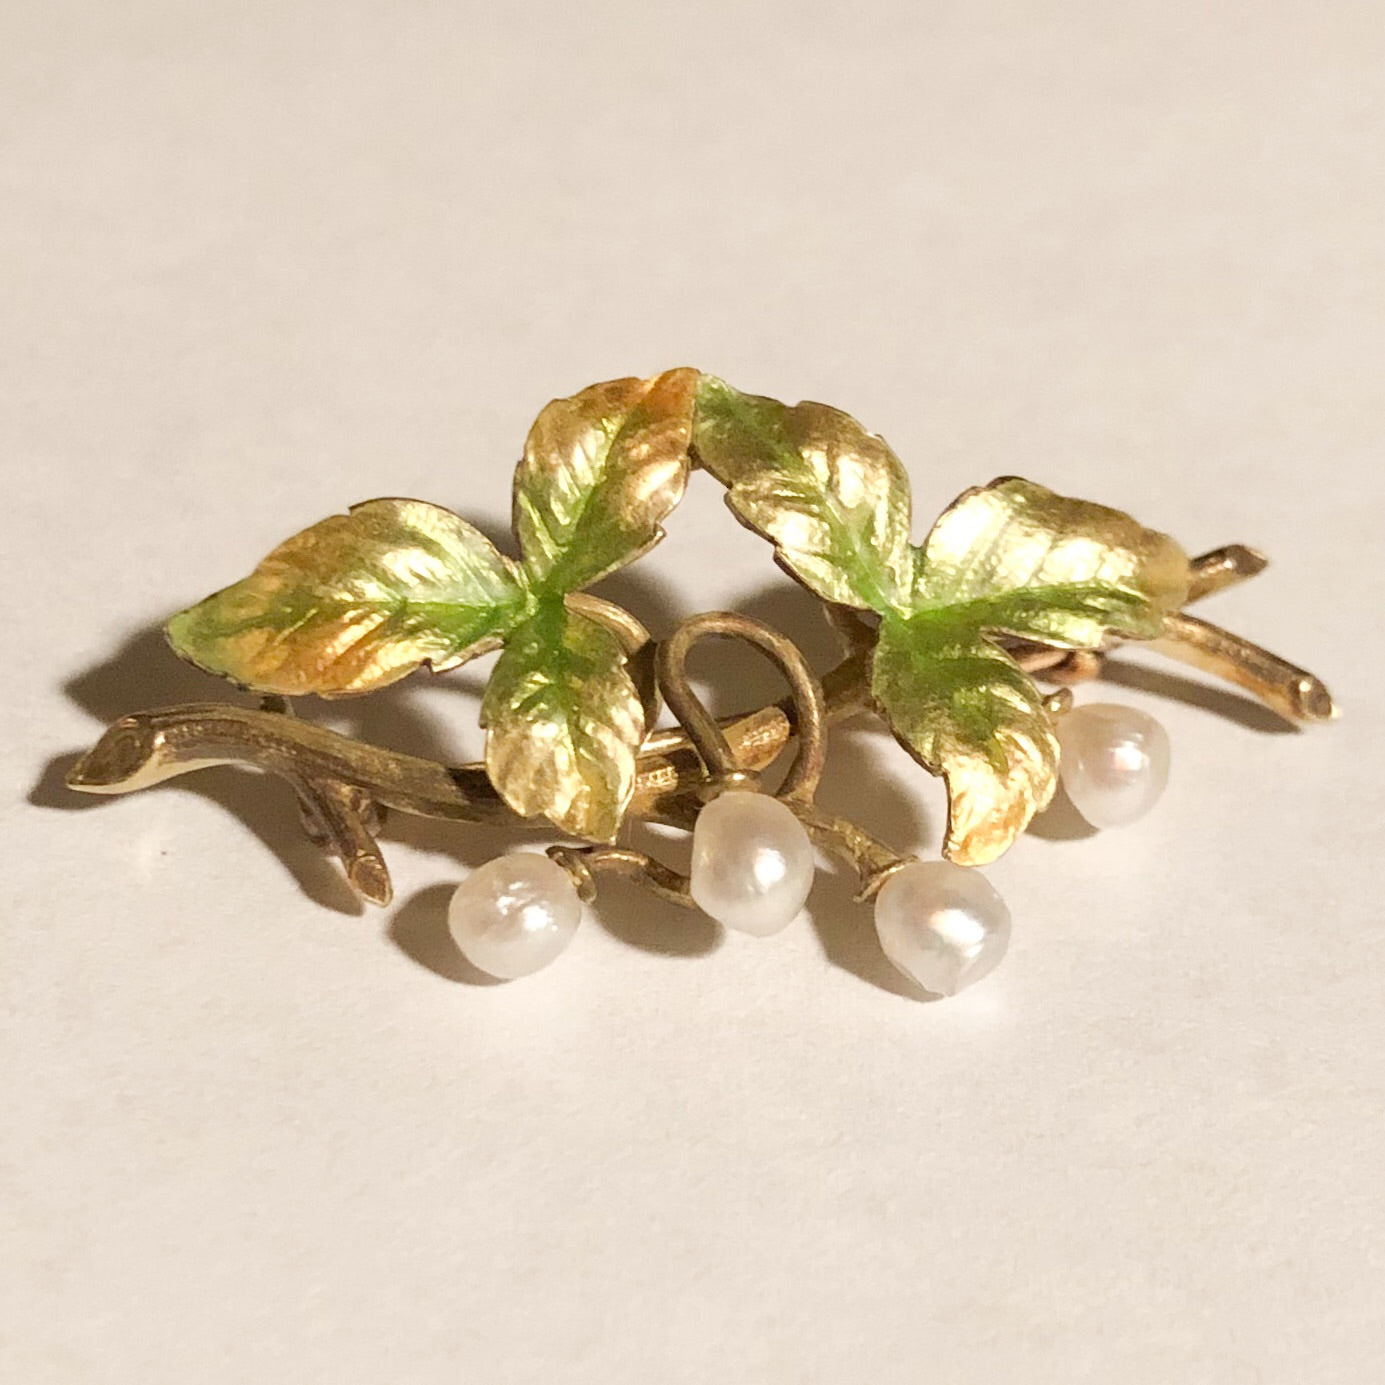 14K Yellow Gold Antique Pin with Enamel Leaves and Seed Pearls   CP0011